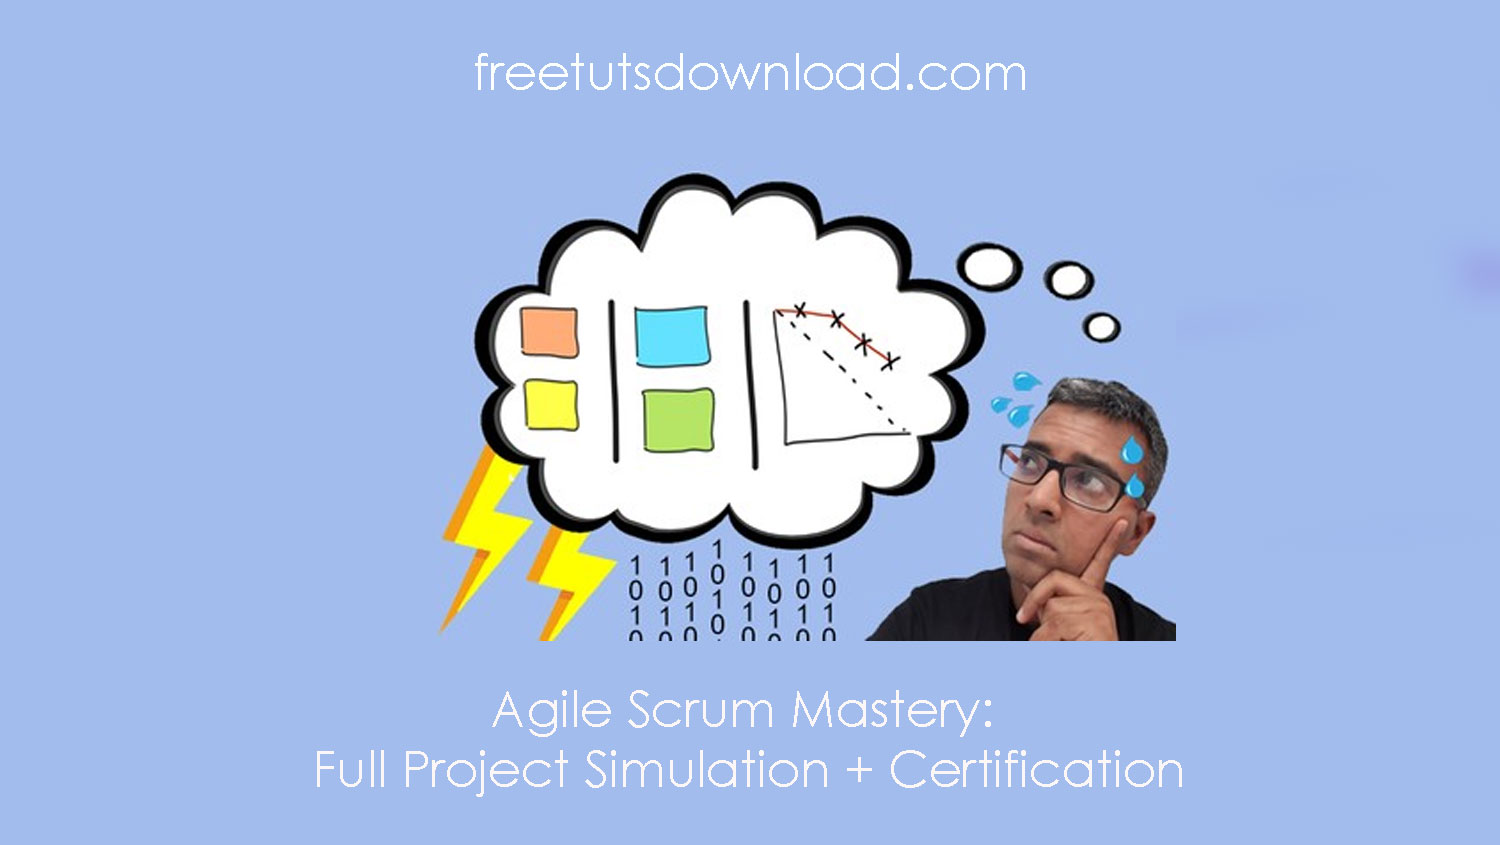 Agile Scrum Mastery: Full Project Simulation + Certification free download